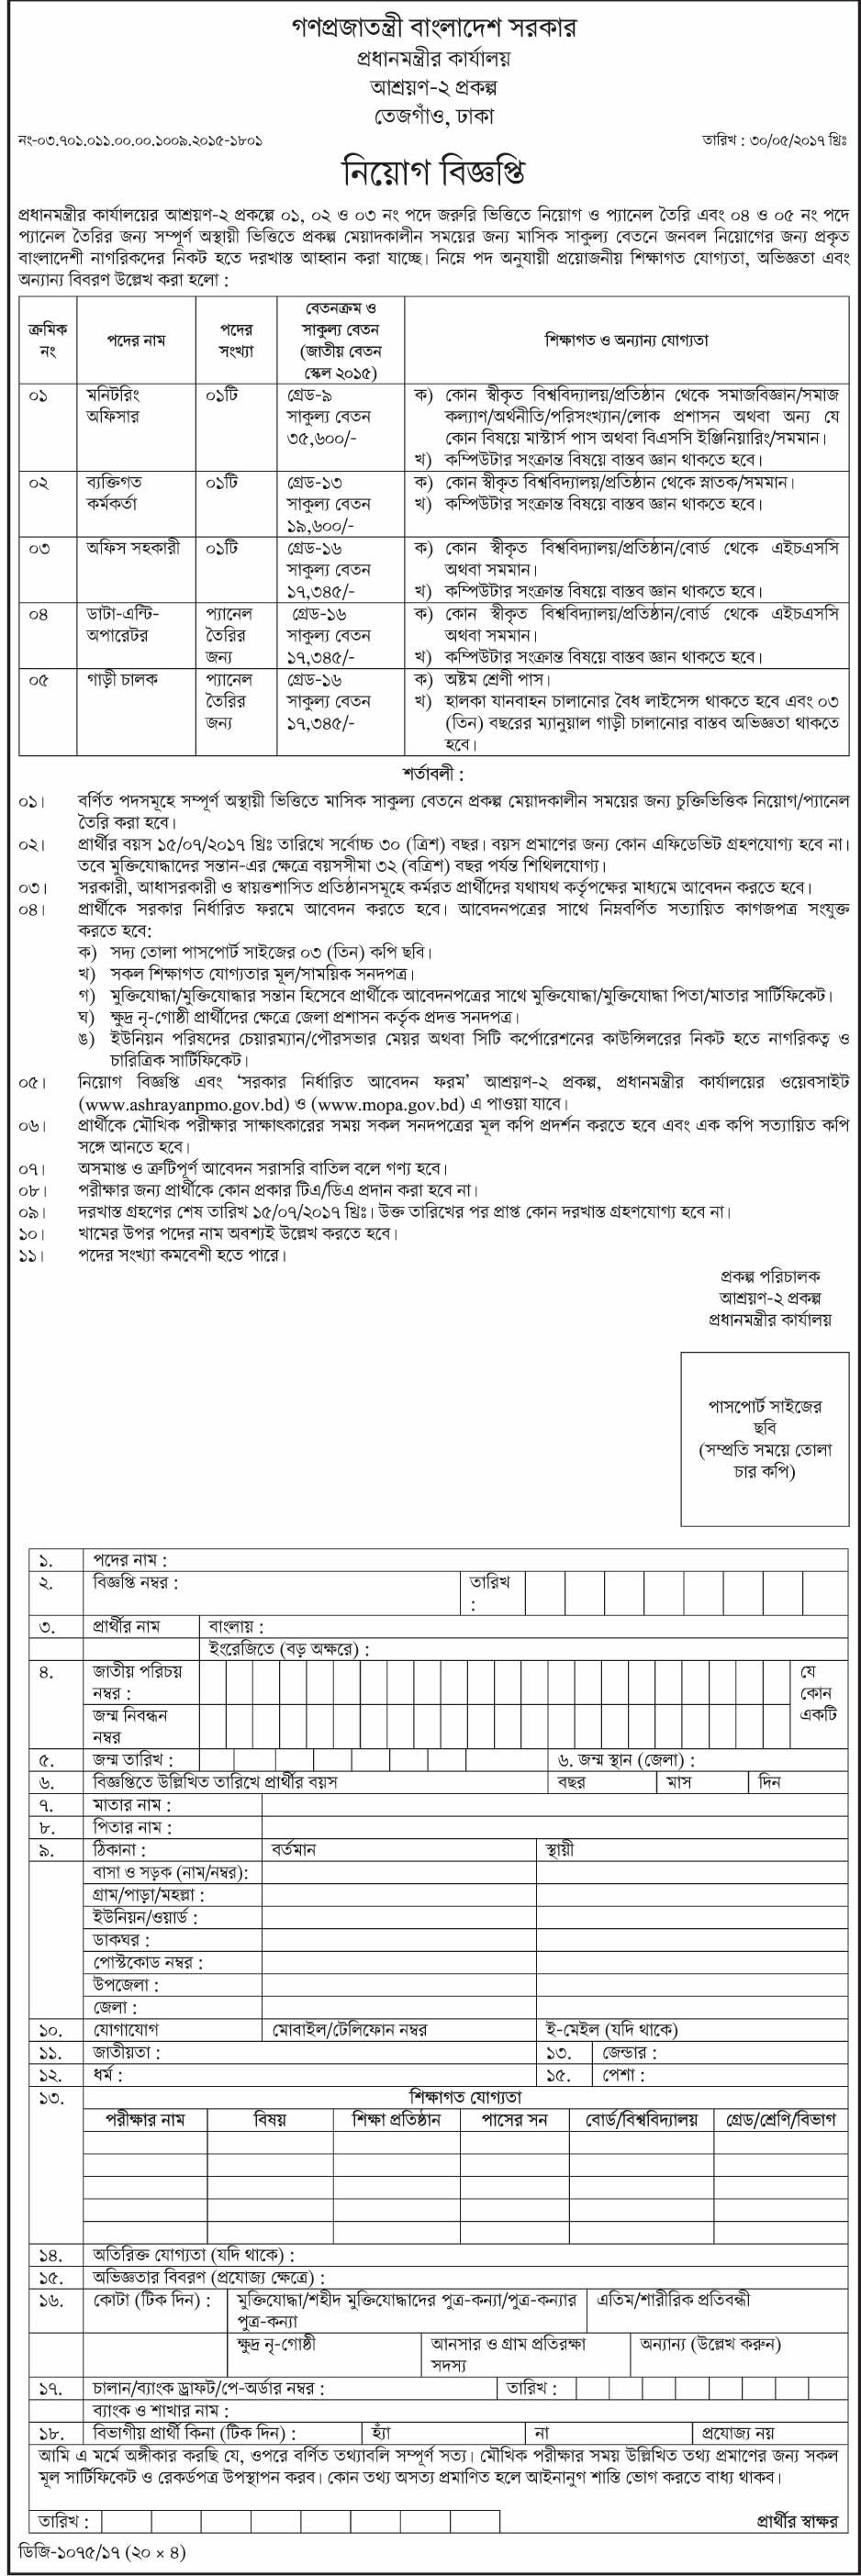 Prime Minister's Office Dhaka, Prime Minister Office Job Circular & Details 2017 - BD RESULTS 24